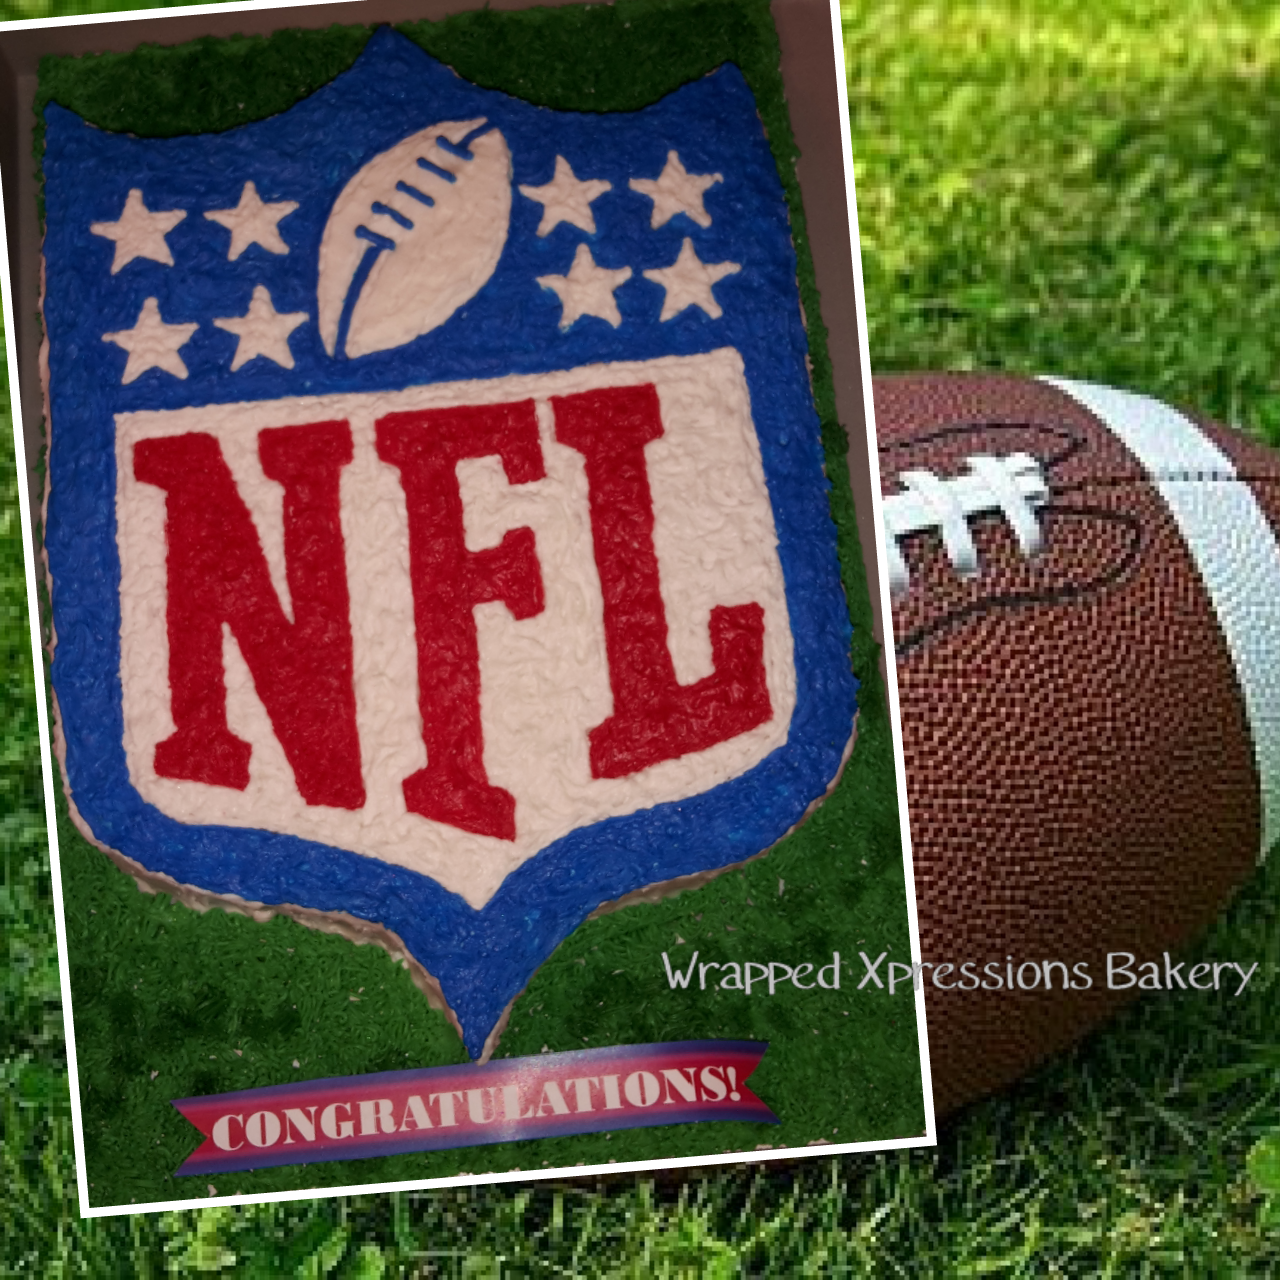 Nfl Logo Cut Out Cake All buttercream NFL logo cake placed on a bed of grass